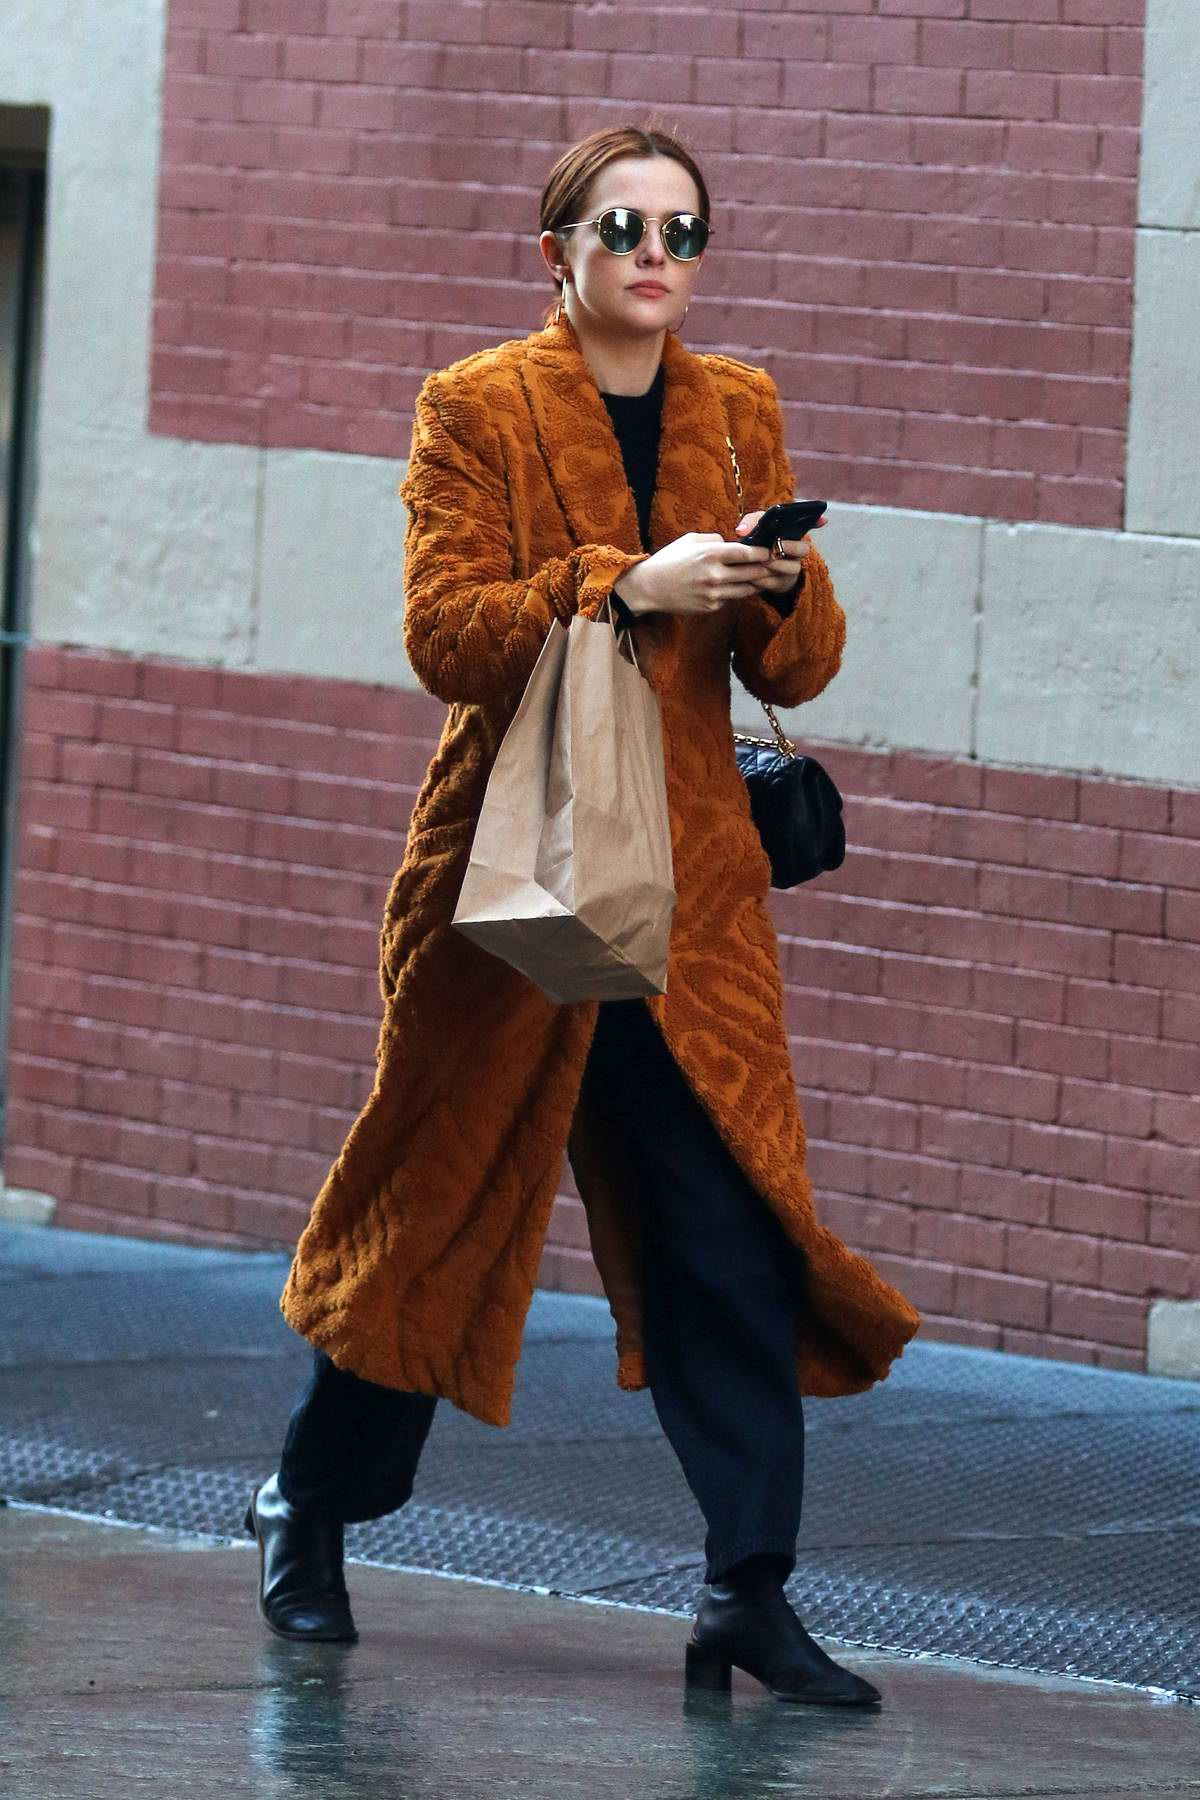 Zoey Deutch sports a rust colored coat while out shopping in SoHo, New York City